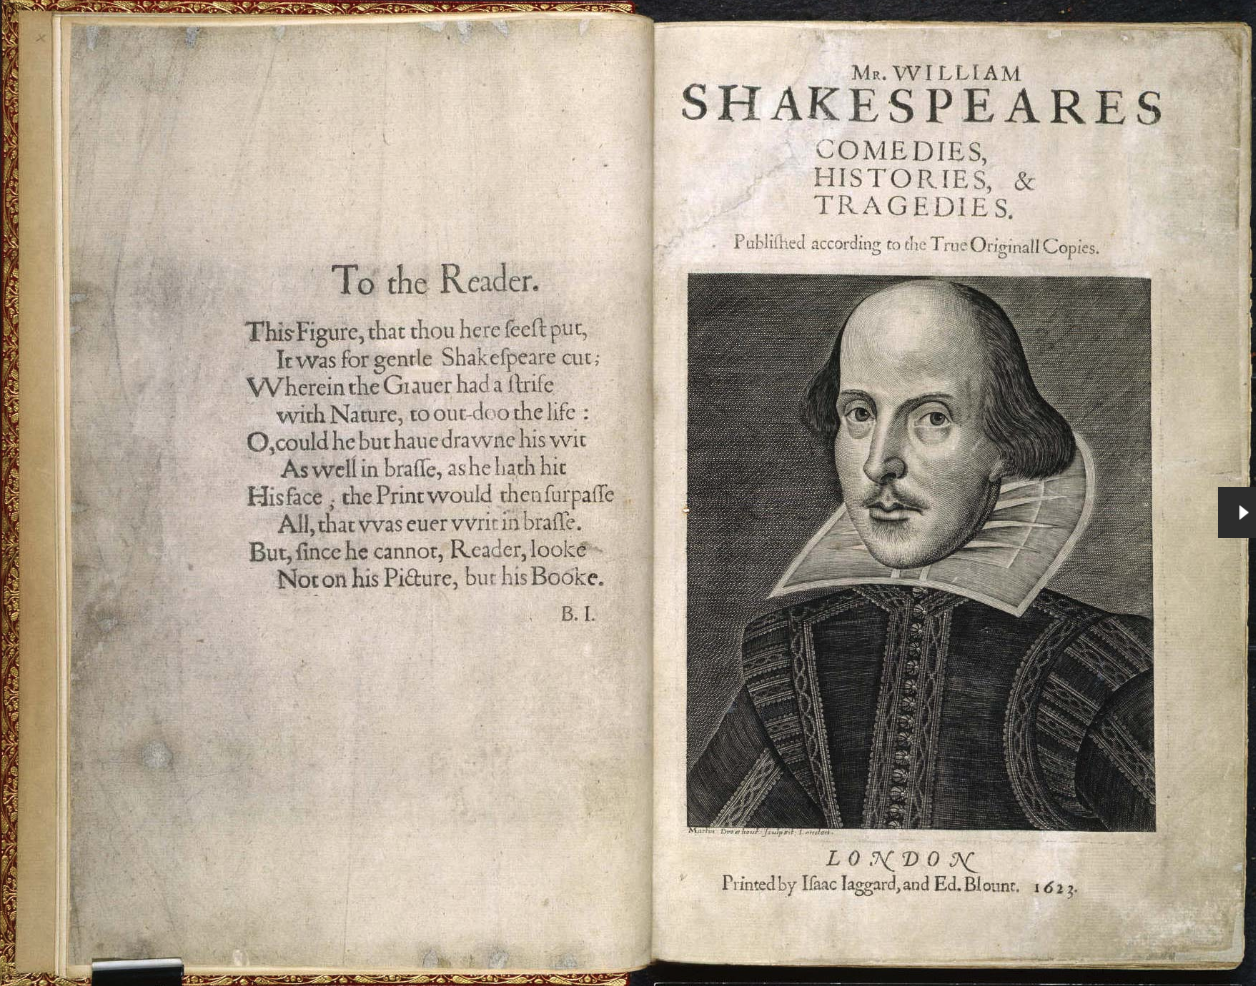 Title page and frontispiece of the first folio.